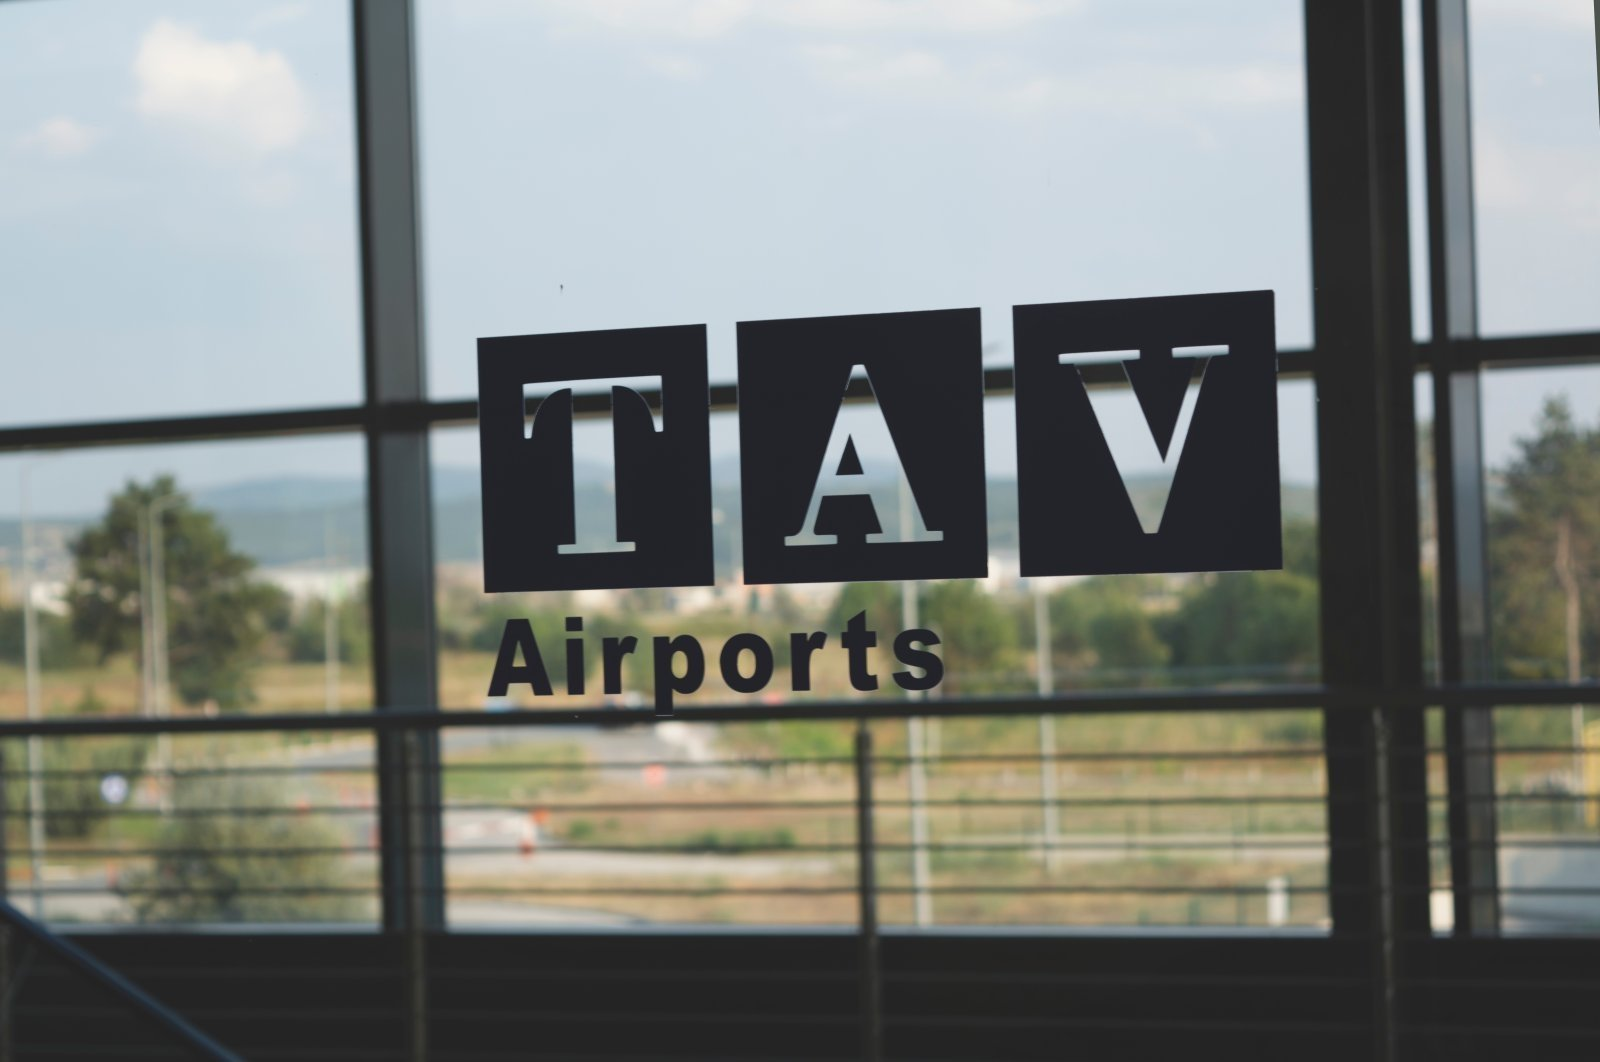 TAV Airports' logo is seen on an airport window in Skopje, Macedonia, Aug. 10, 2019. (Shutterstock Photo)